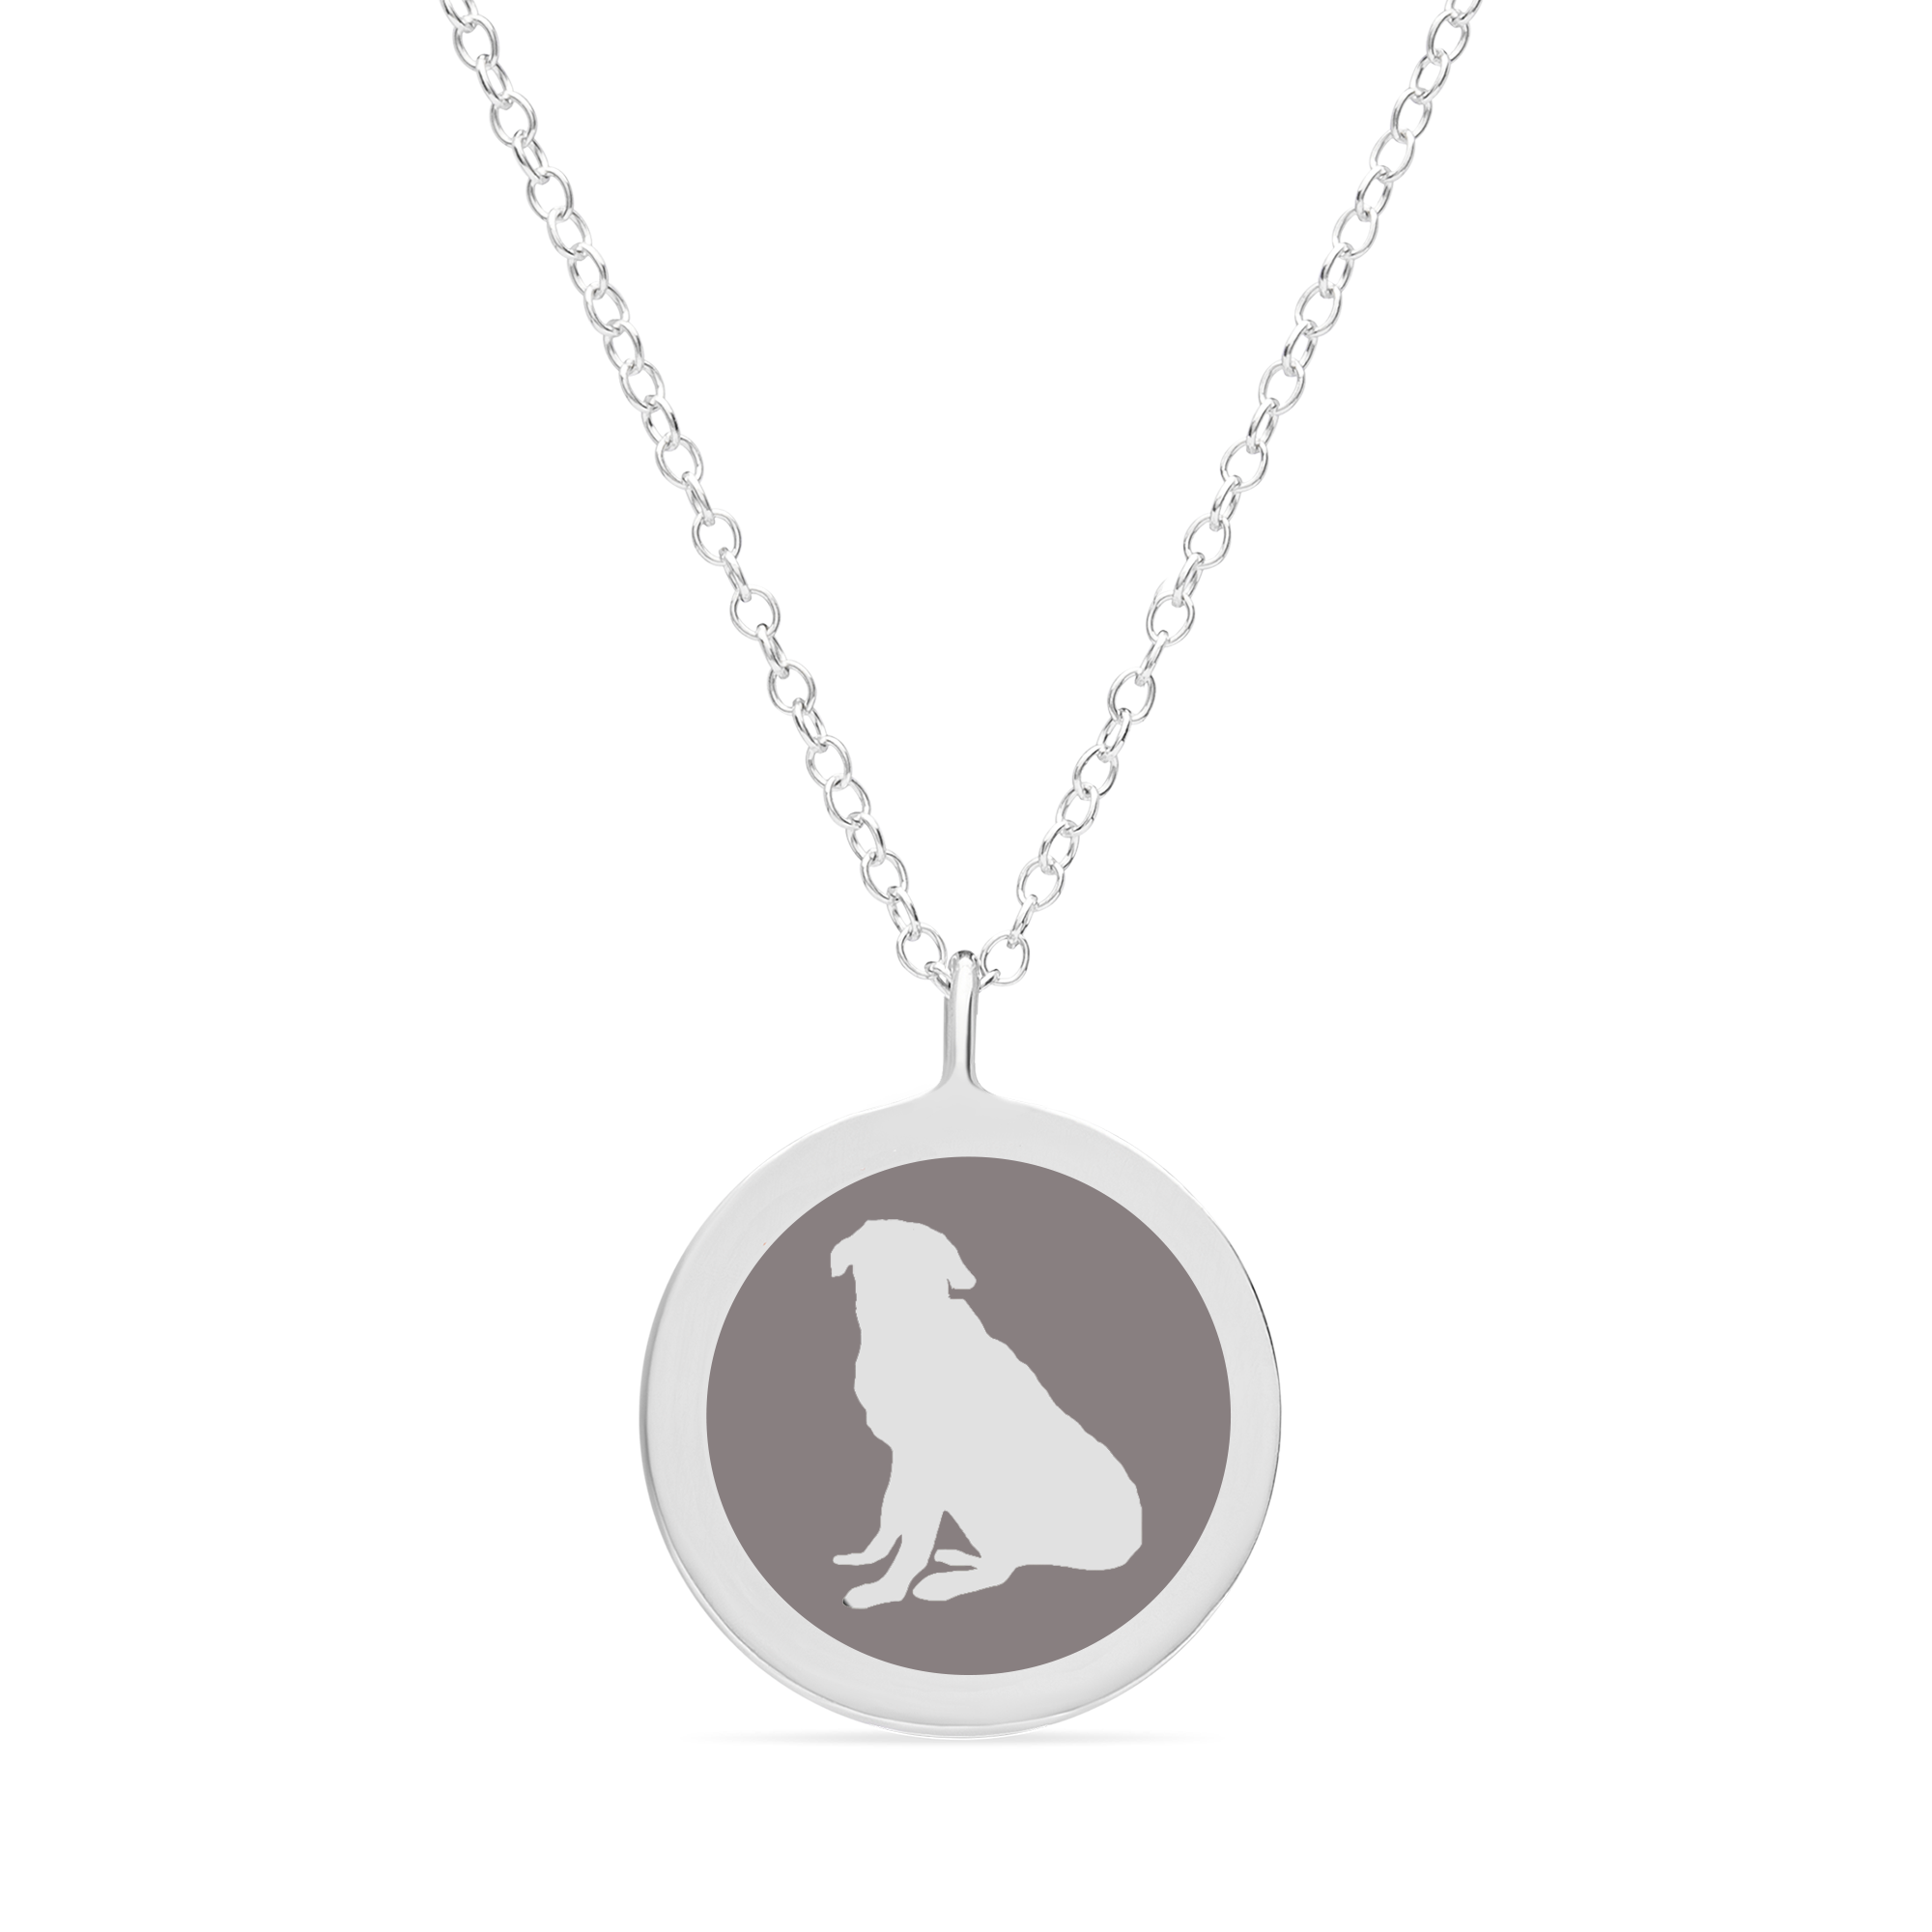 ORIGINAL CUSTOM PET CHARM in sterling silver